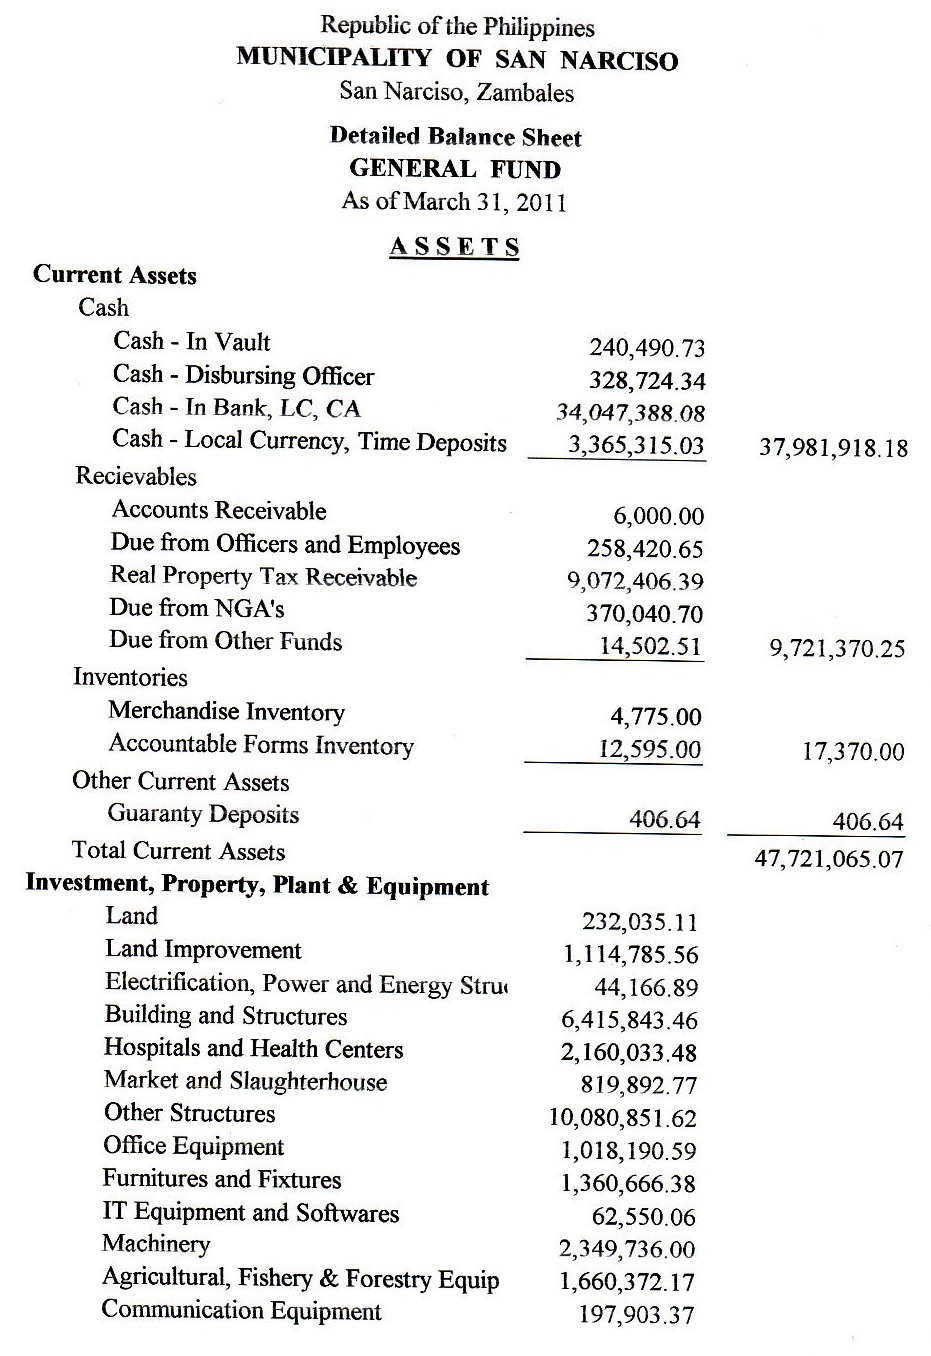 Differences Between Real Accounts and Nominal Accounts